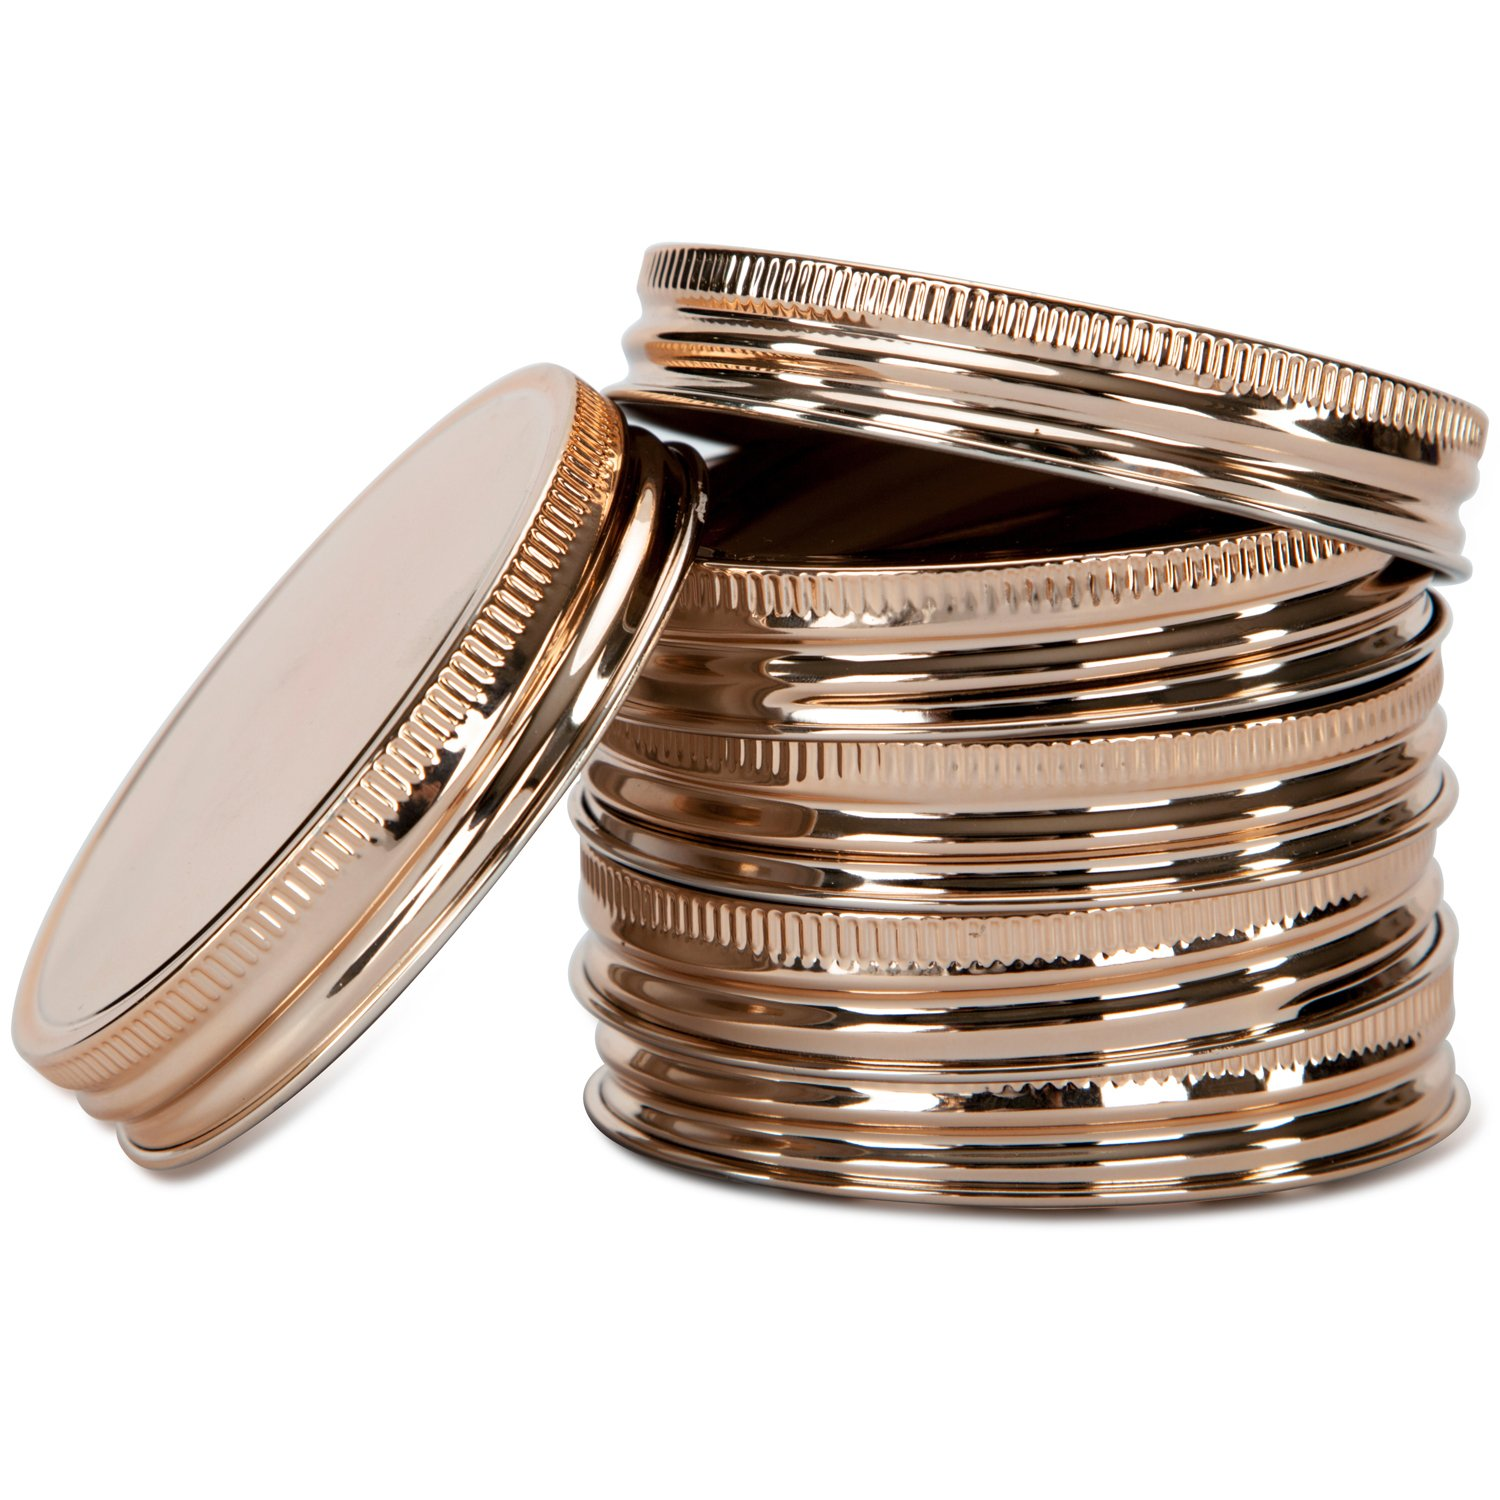 Jillmo Large Copper-Coated Mason Jar Lids -Stainless Steel Storage Caps, Wide Mouth-6pcs